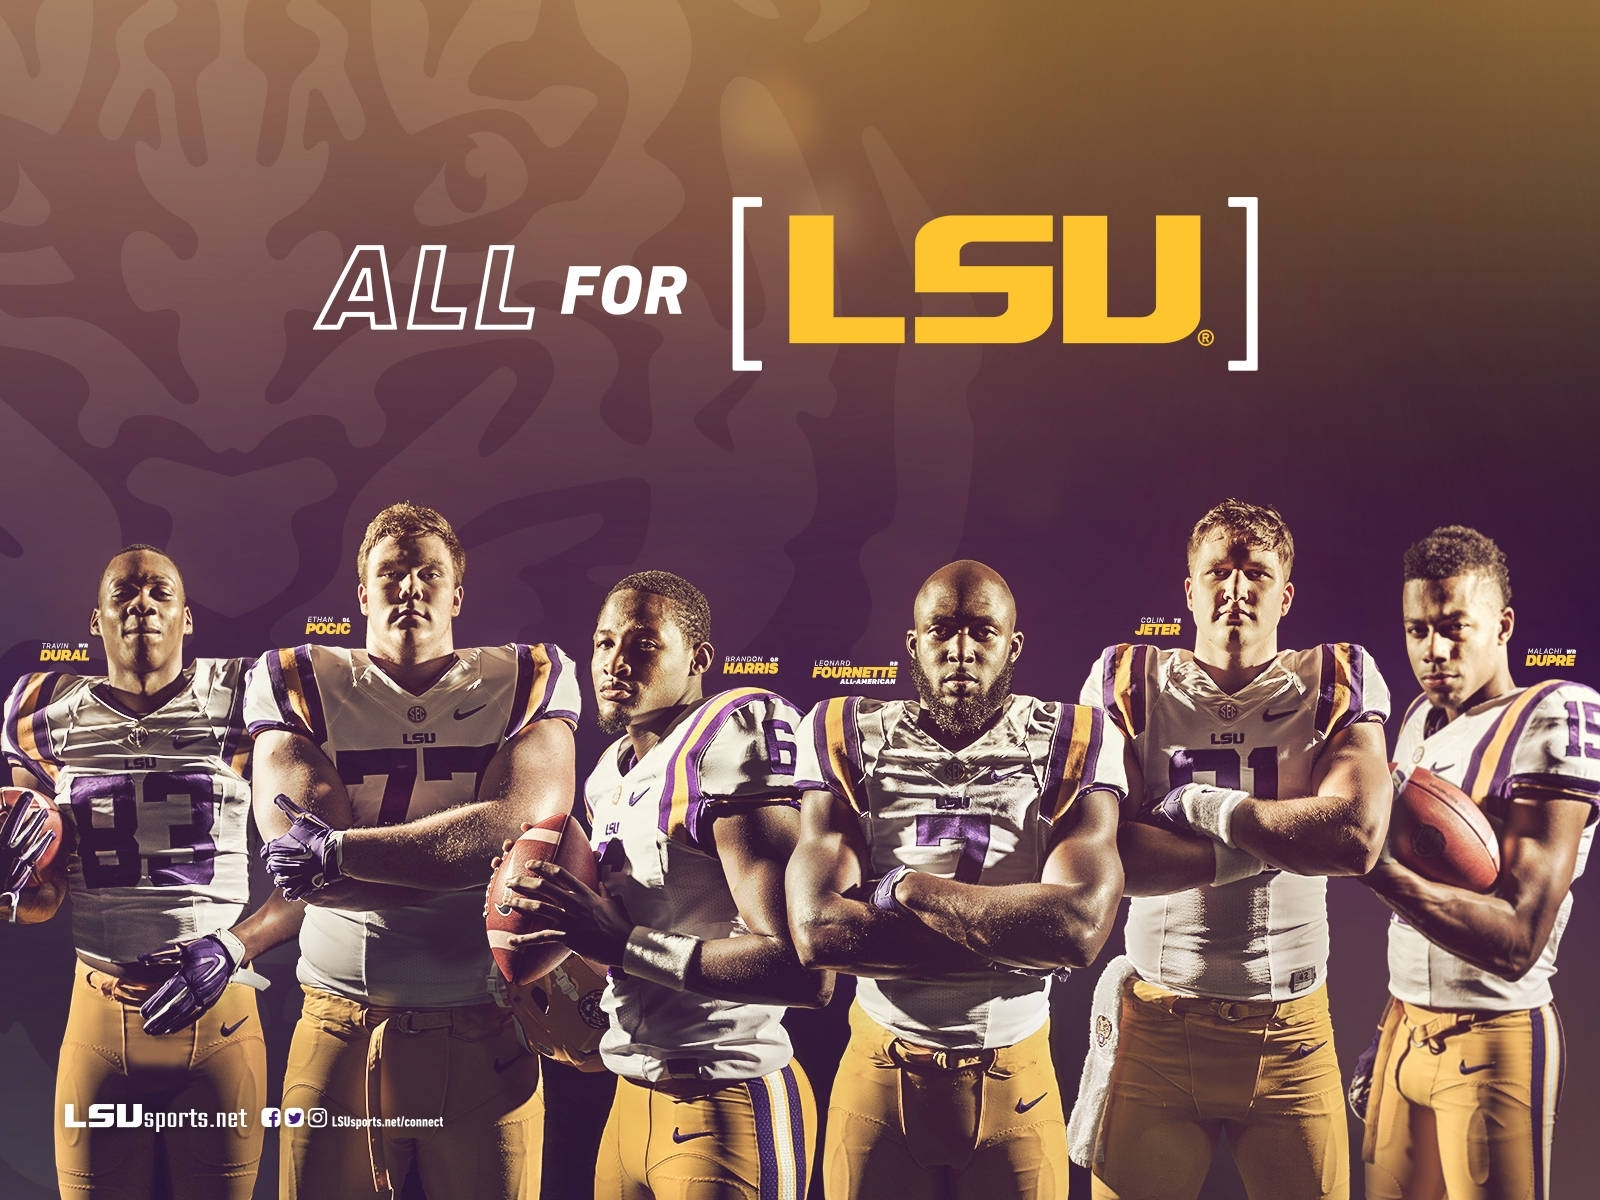 2016-17 Lsu Athletics Wallpapers, Social Covers - Lsusports